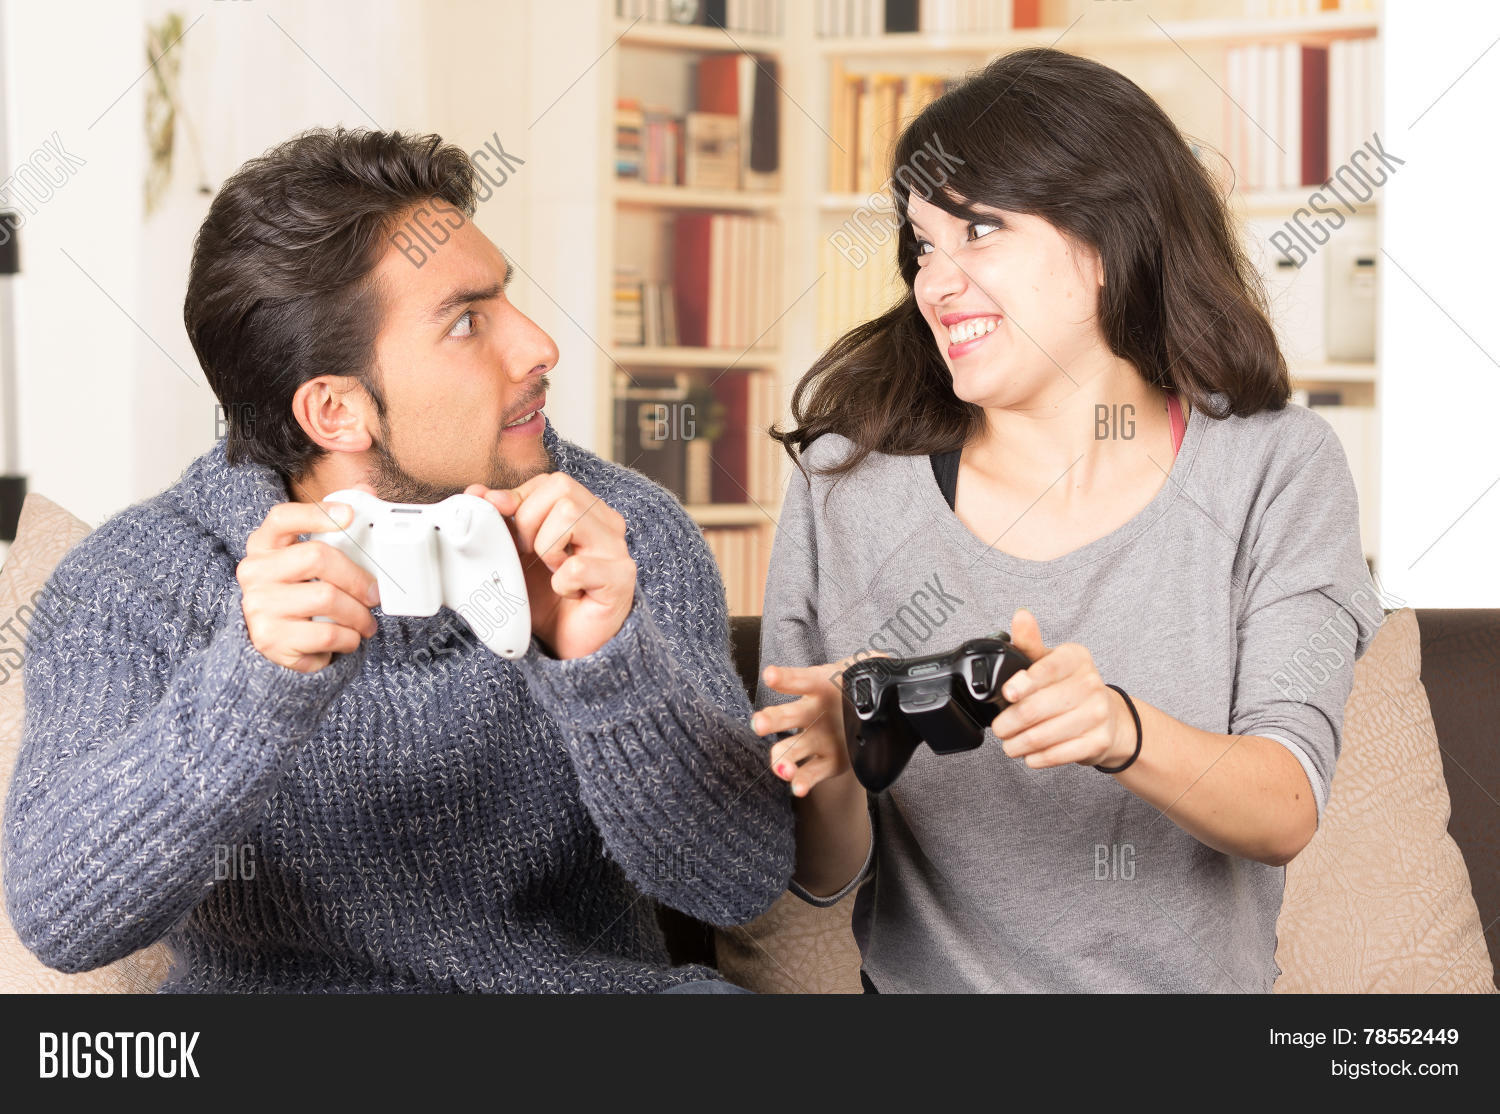 Young Cute Couple Image Photo Free Trial Bigstock